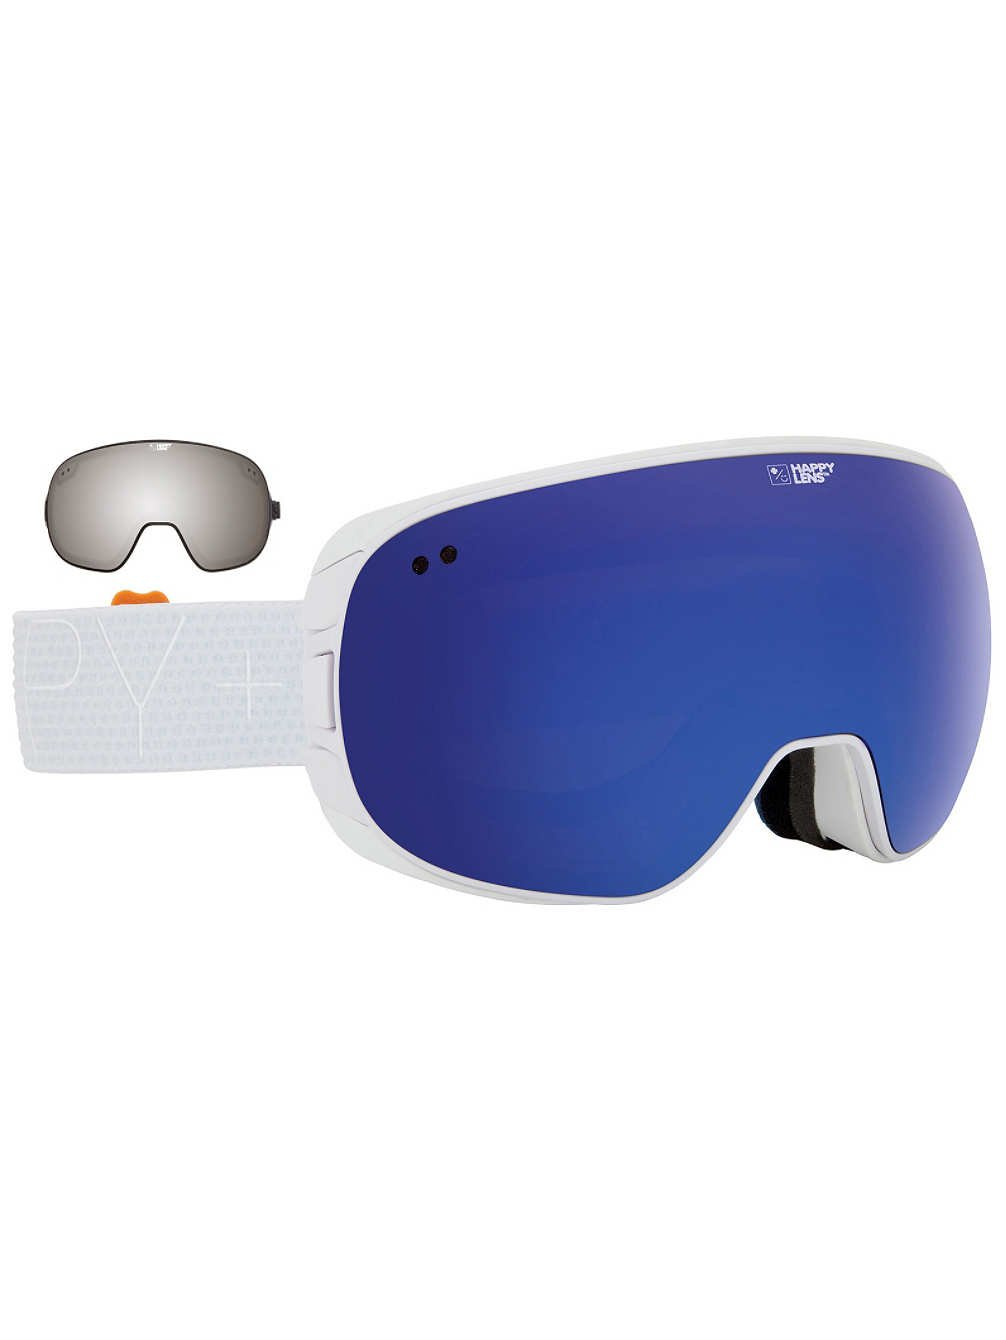 Spy Optic Spy + Eero Niemela Happy Doom Winter Sport Racing Snowmobile Goggles, Bronze w/ Dark Blue Spectra, One Size